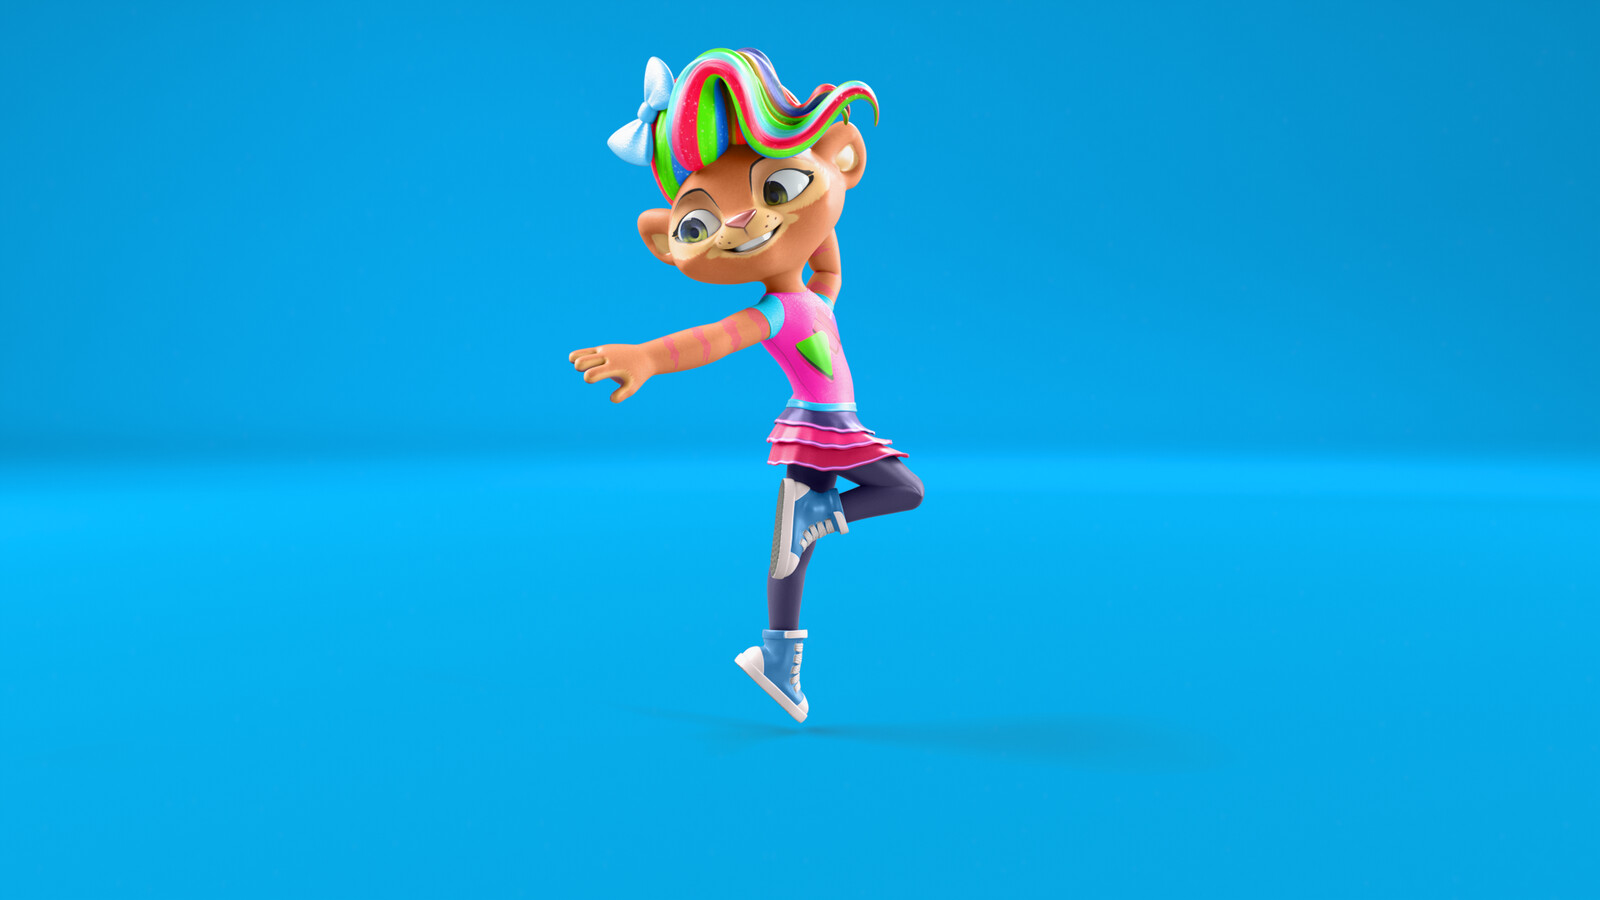 This was an advertising image to showcase the character Twirl doing a ballet dance pose.